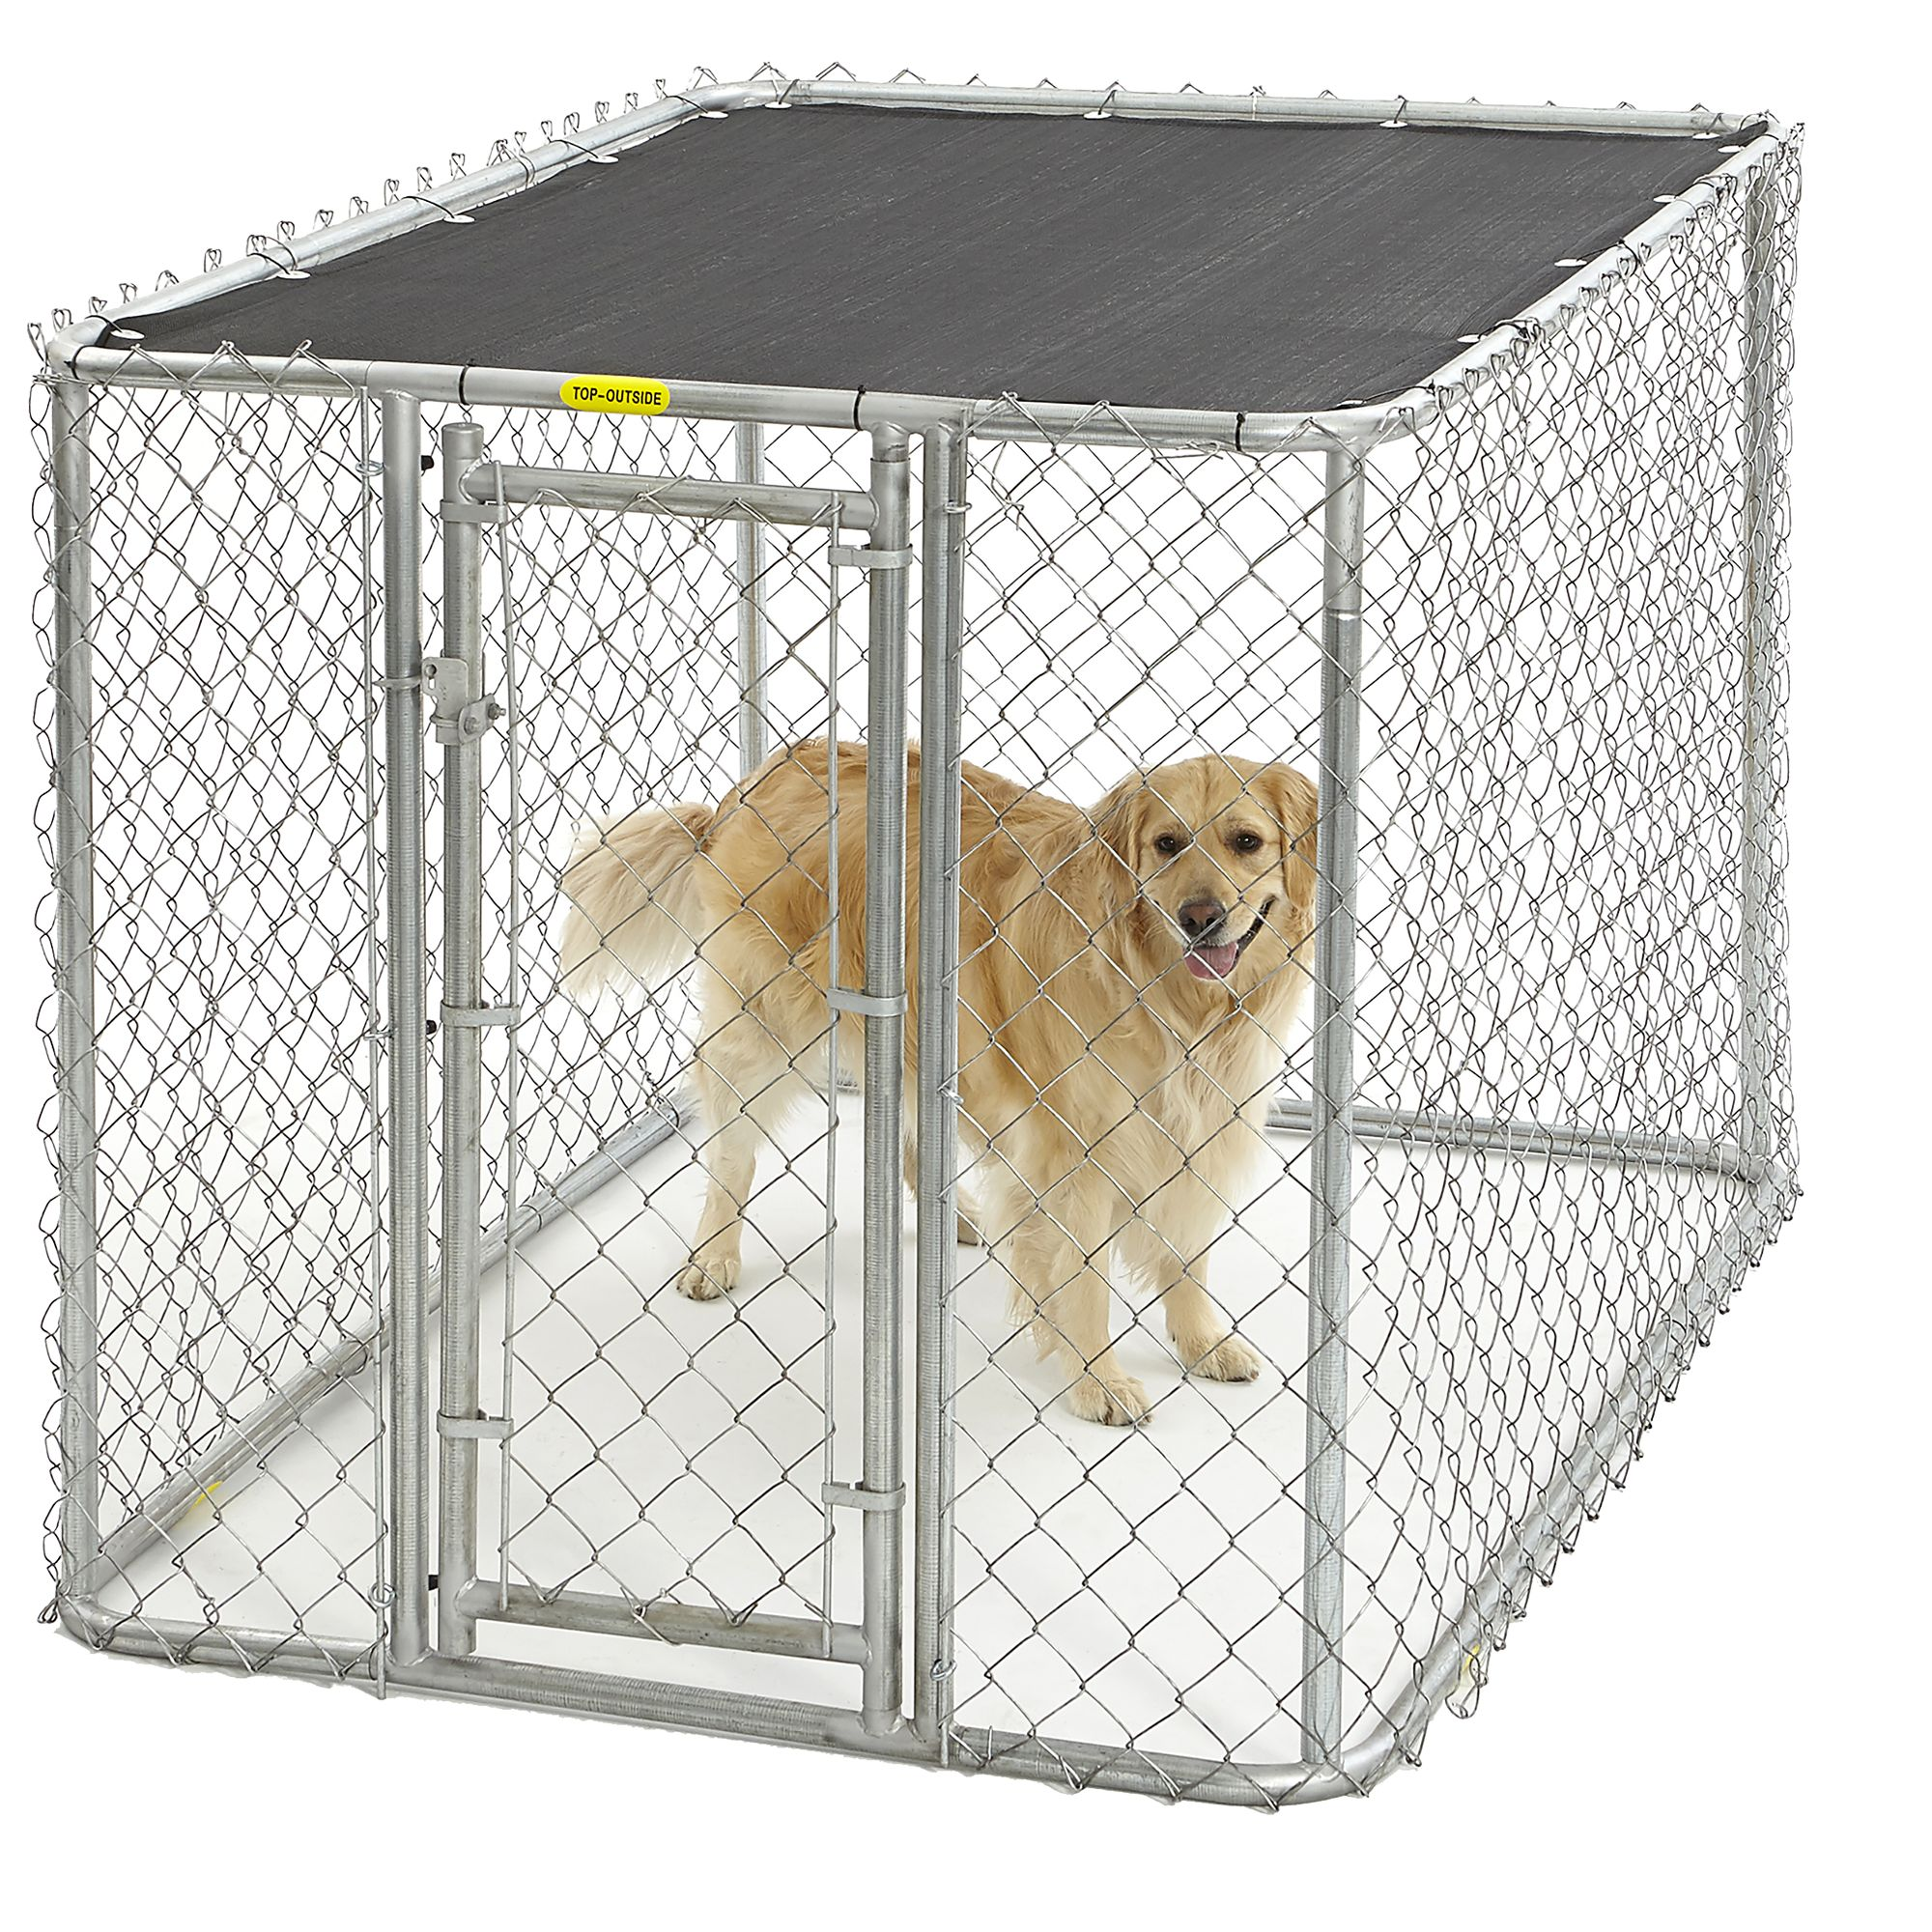 Midwest Chain Link Portable Kennel With Sunscreen Size 6l X 4w X 4h